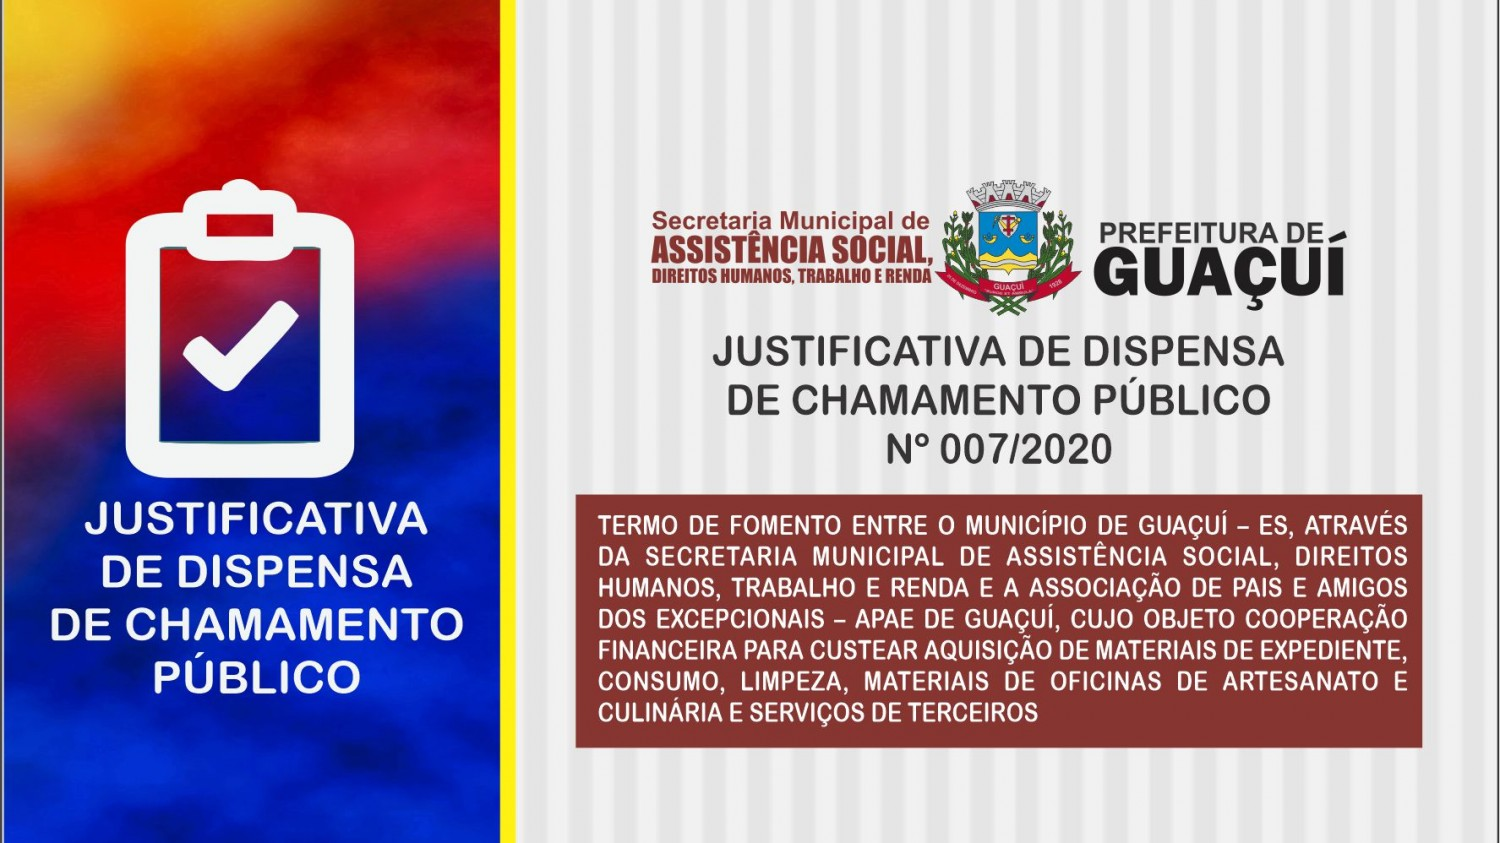 JUSTIFICATIVA DE DISPENSA  DE CHAMAMENTO PÚBLICO  Nº 007/2020